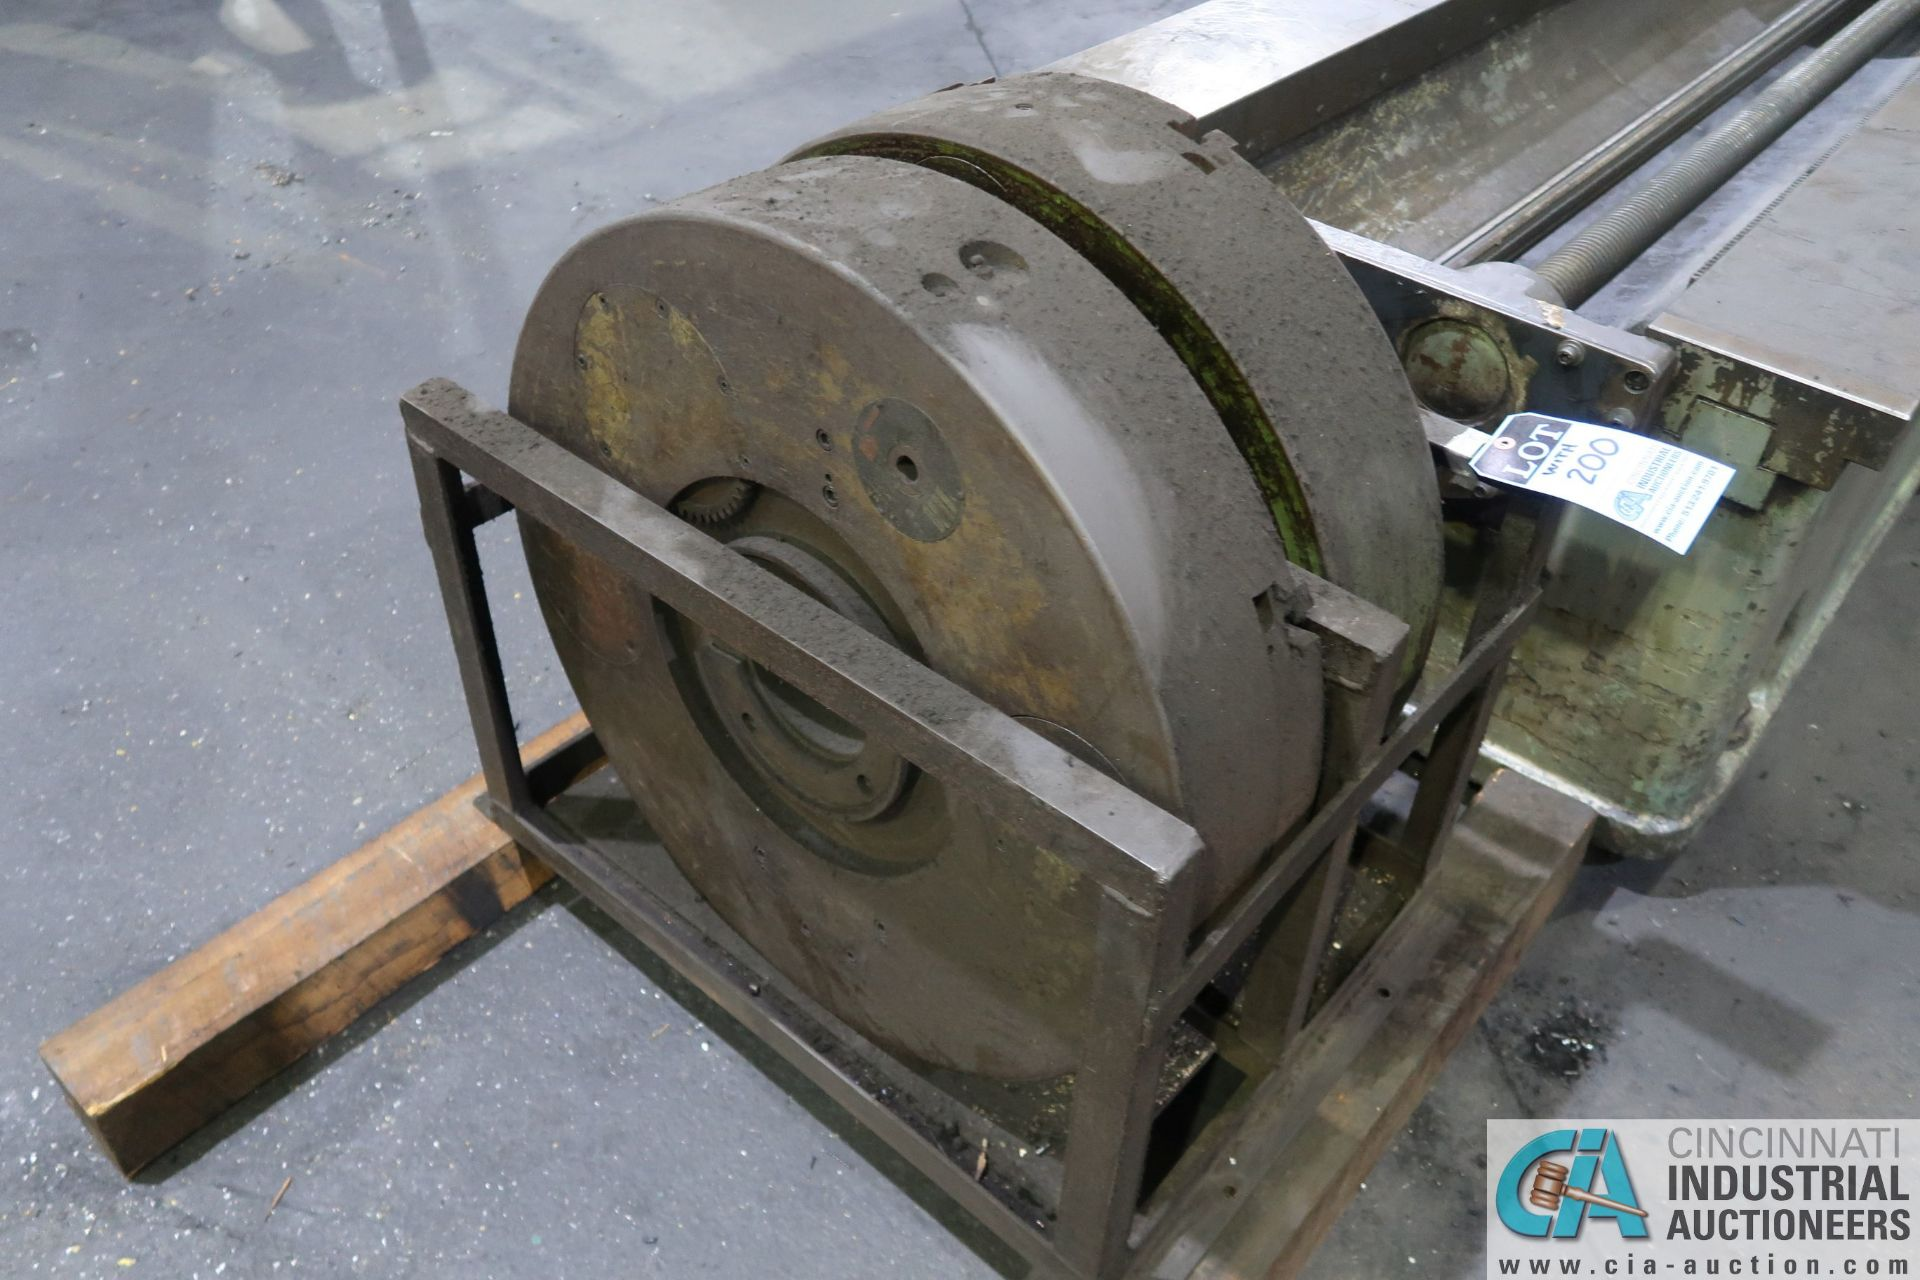 """GIDDINGS AND LEWIS MODEL 350T HORIZONTAL BORING MILL; S/N 150-90-65, 4' X 7' TABLE WITH (2) 24"""" FACE - Image 12 of 16"""